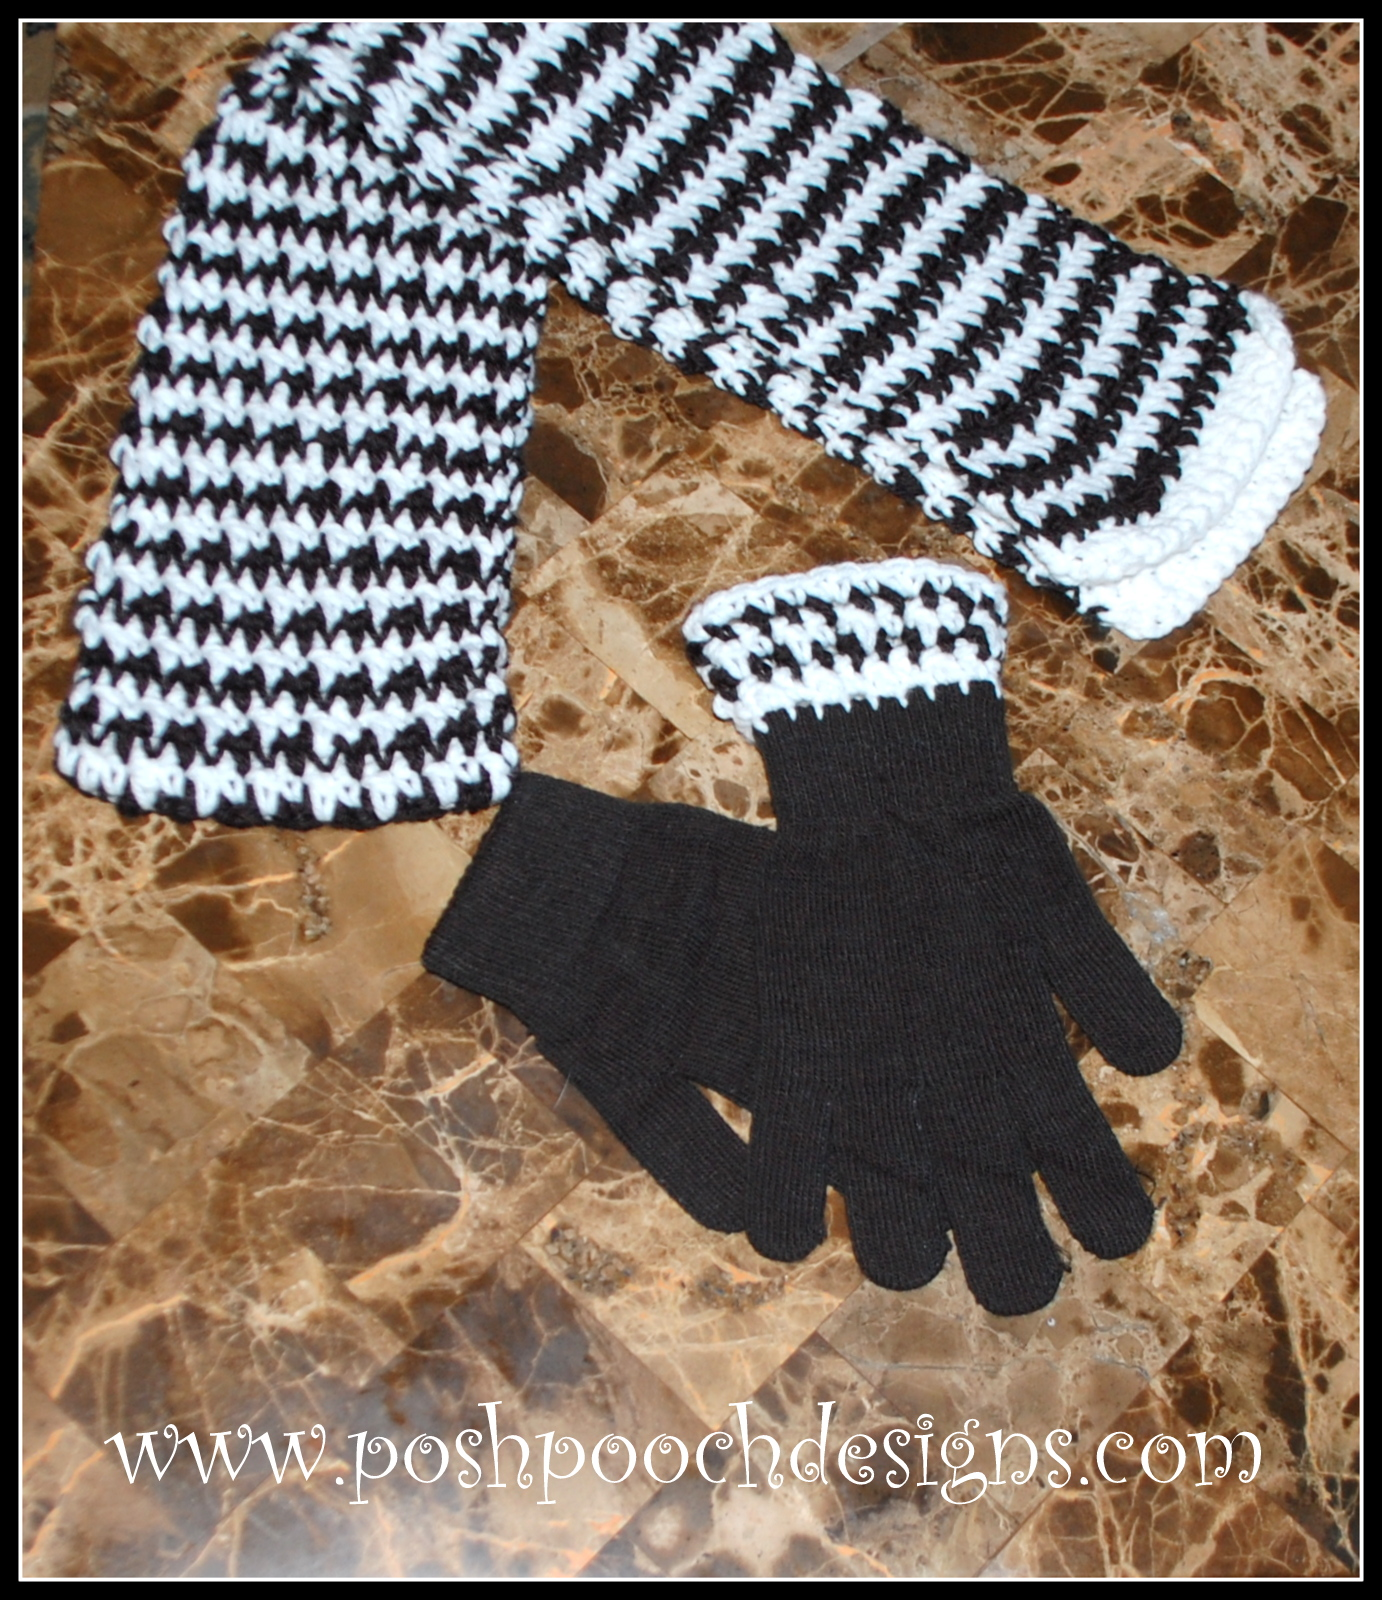 ... Designs Dog Clothes: Hounds Tooth Scarf and Glove Crochet Patterns